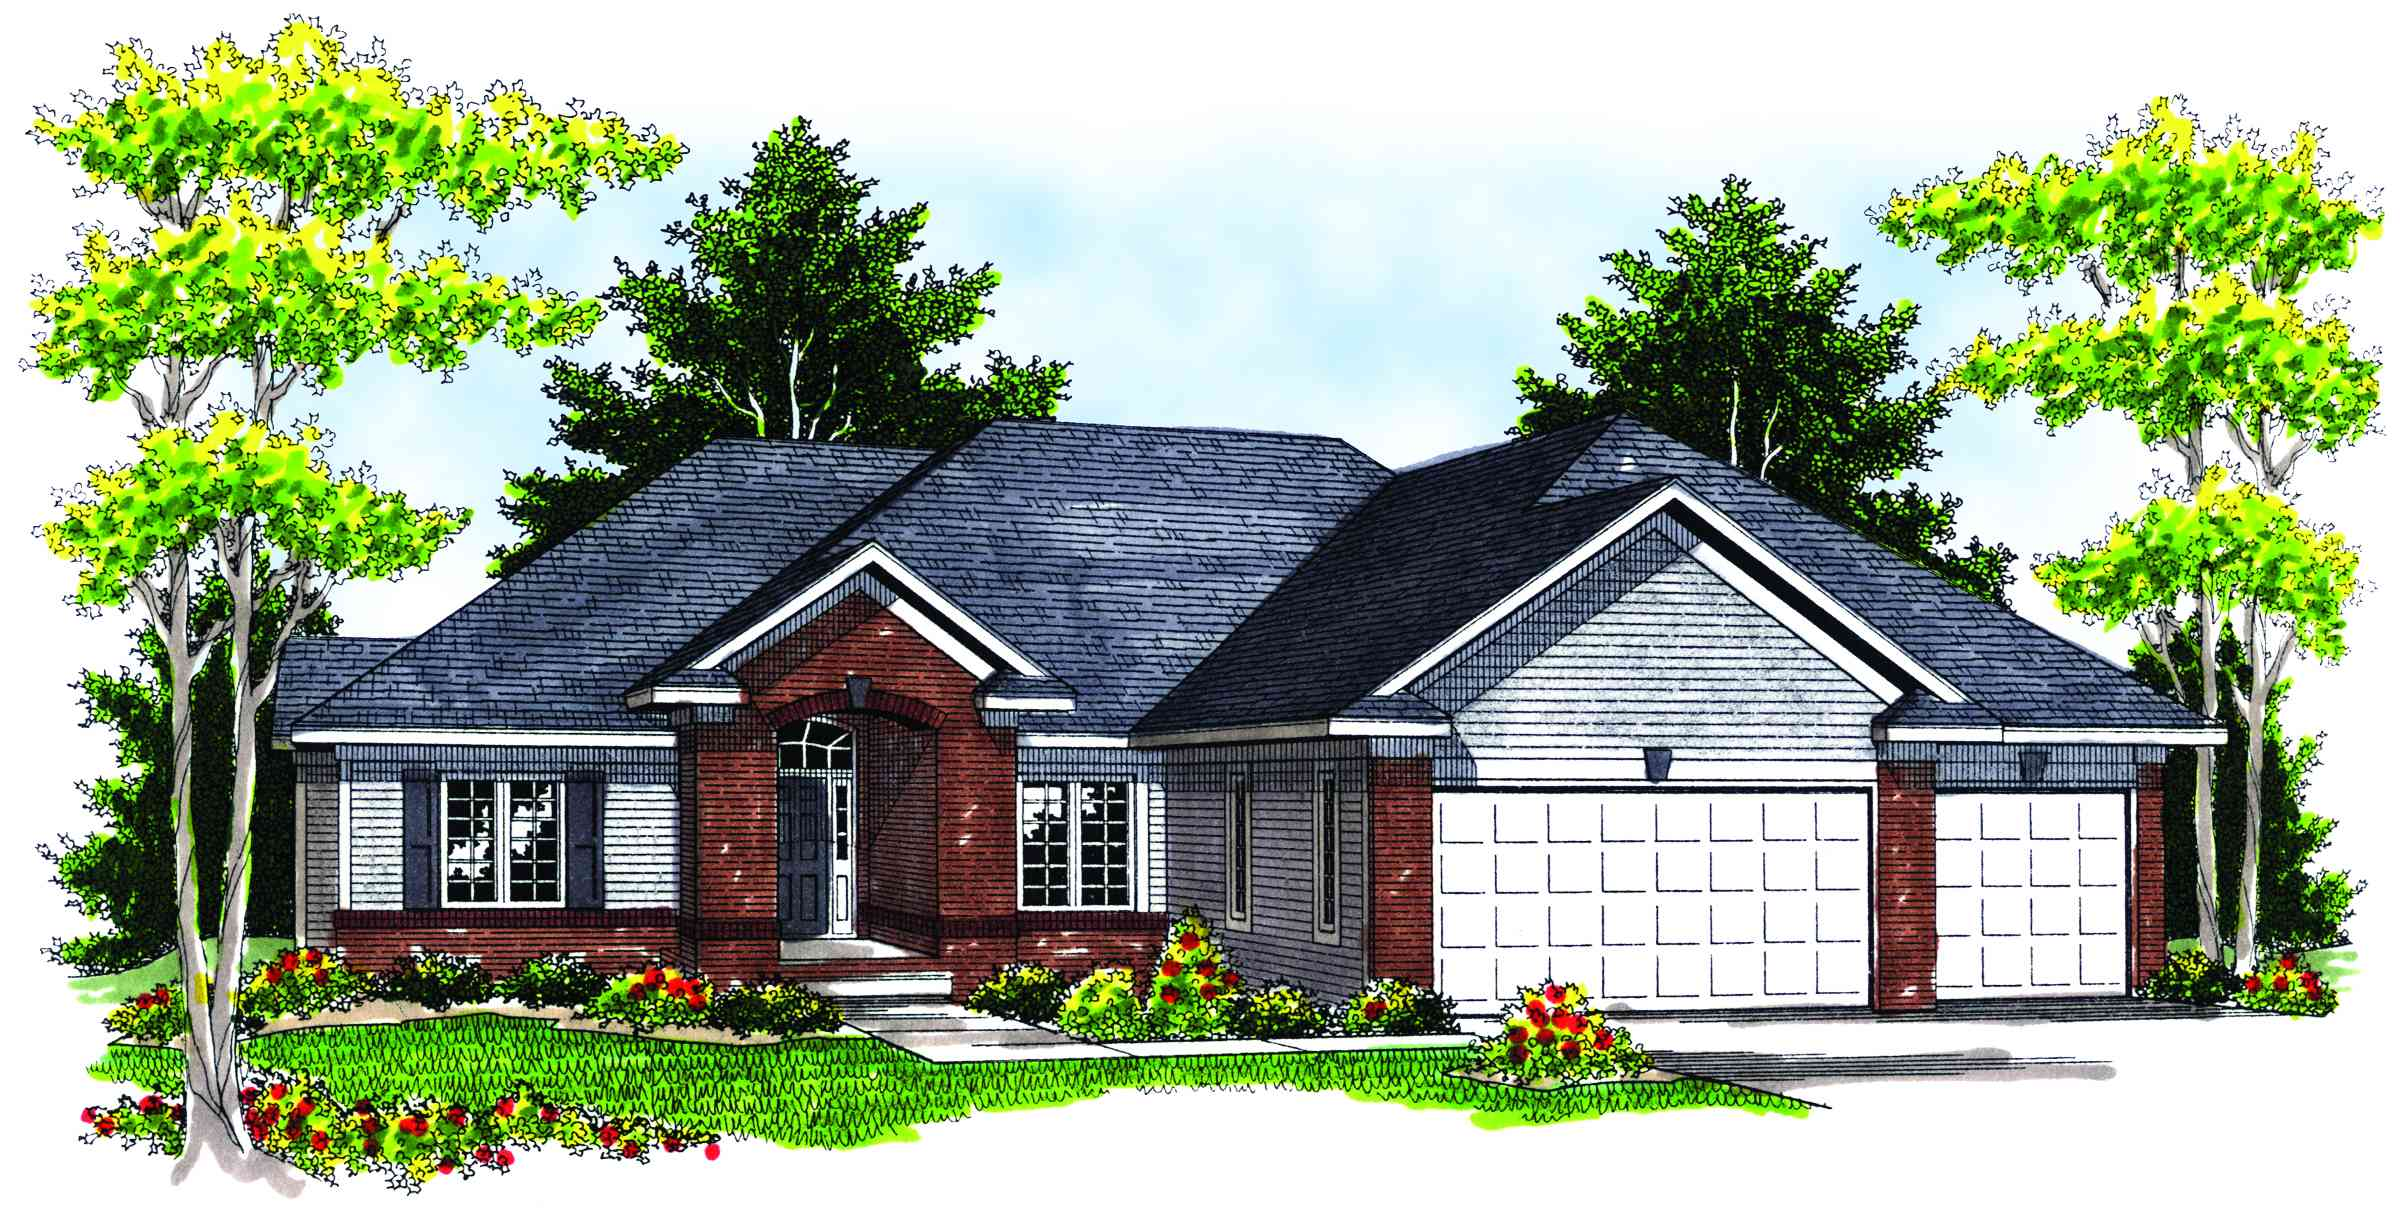 Brick Detailing And Hip Roof Lines 89039ah